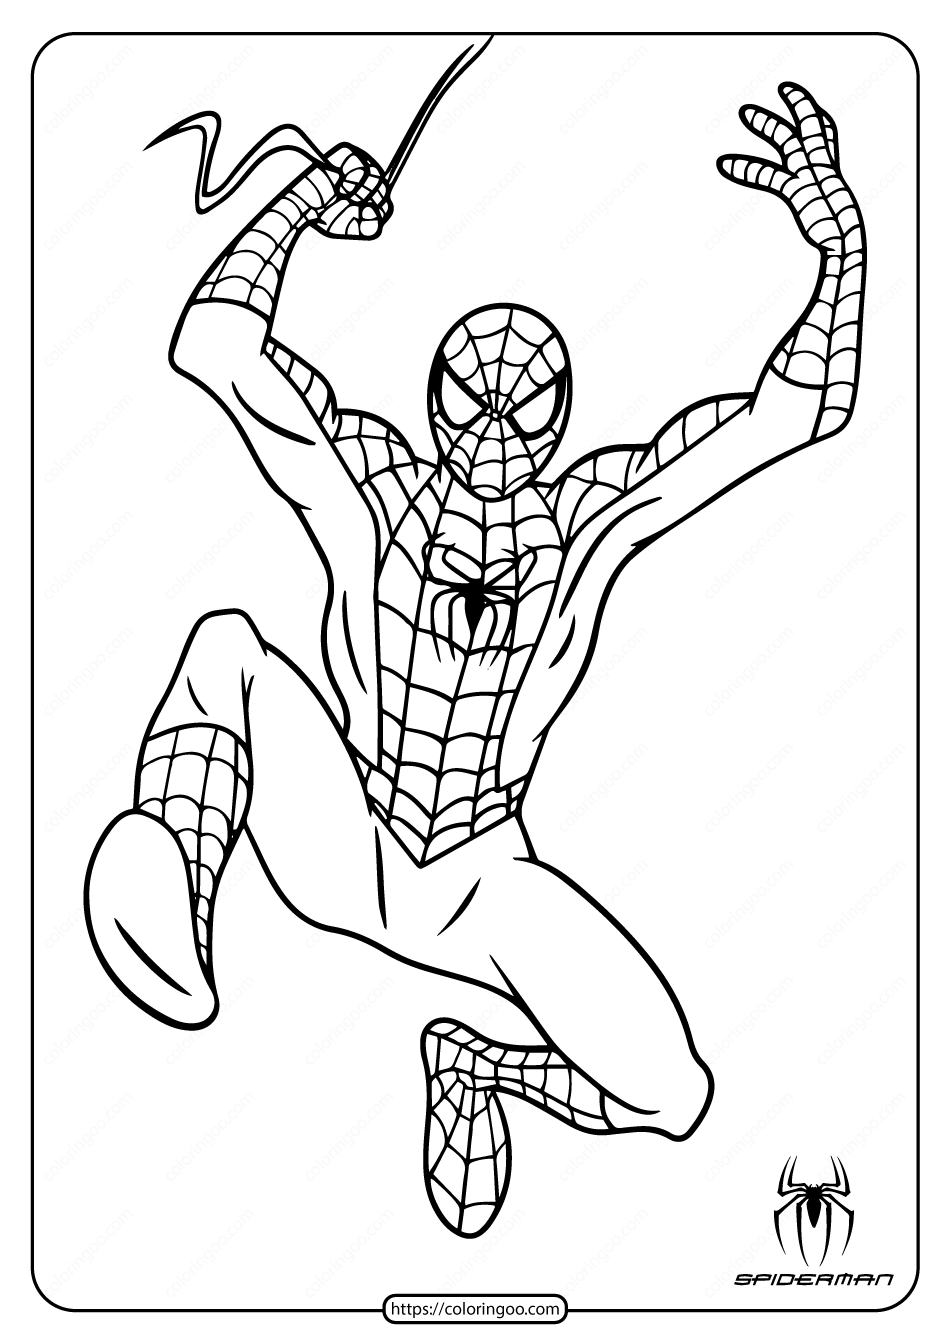 Spiderman Coloring Pages Hanging From Web